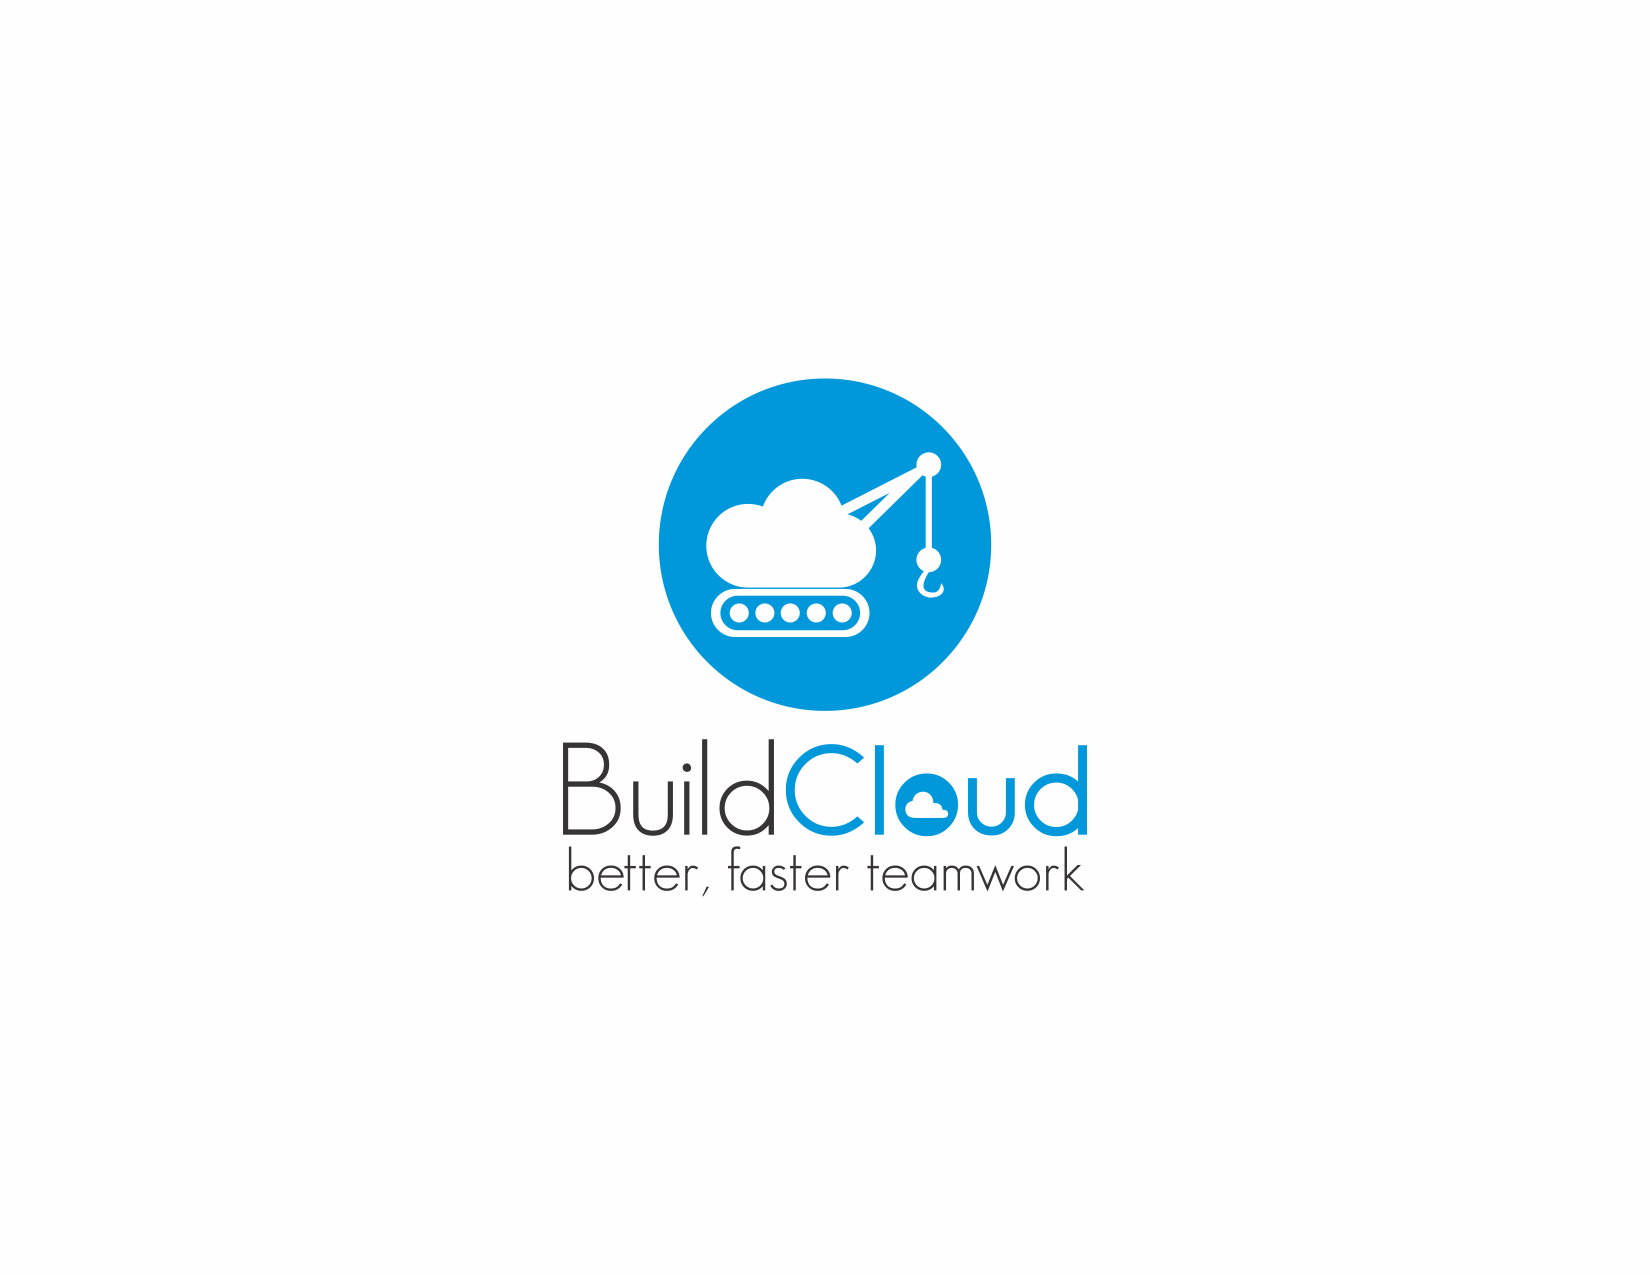 Help BuildCloud with a new logo